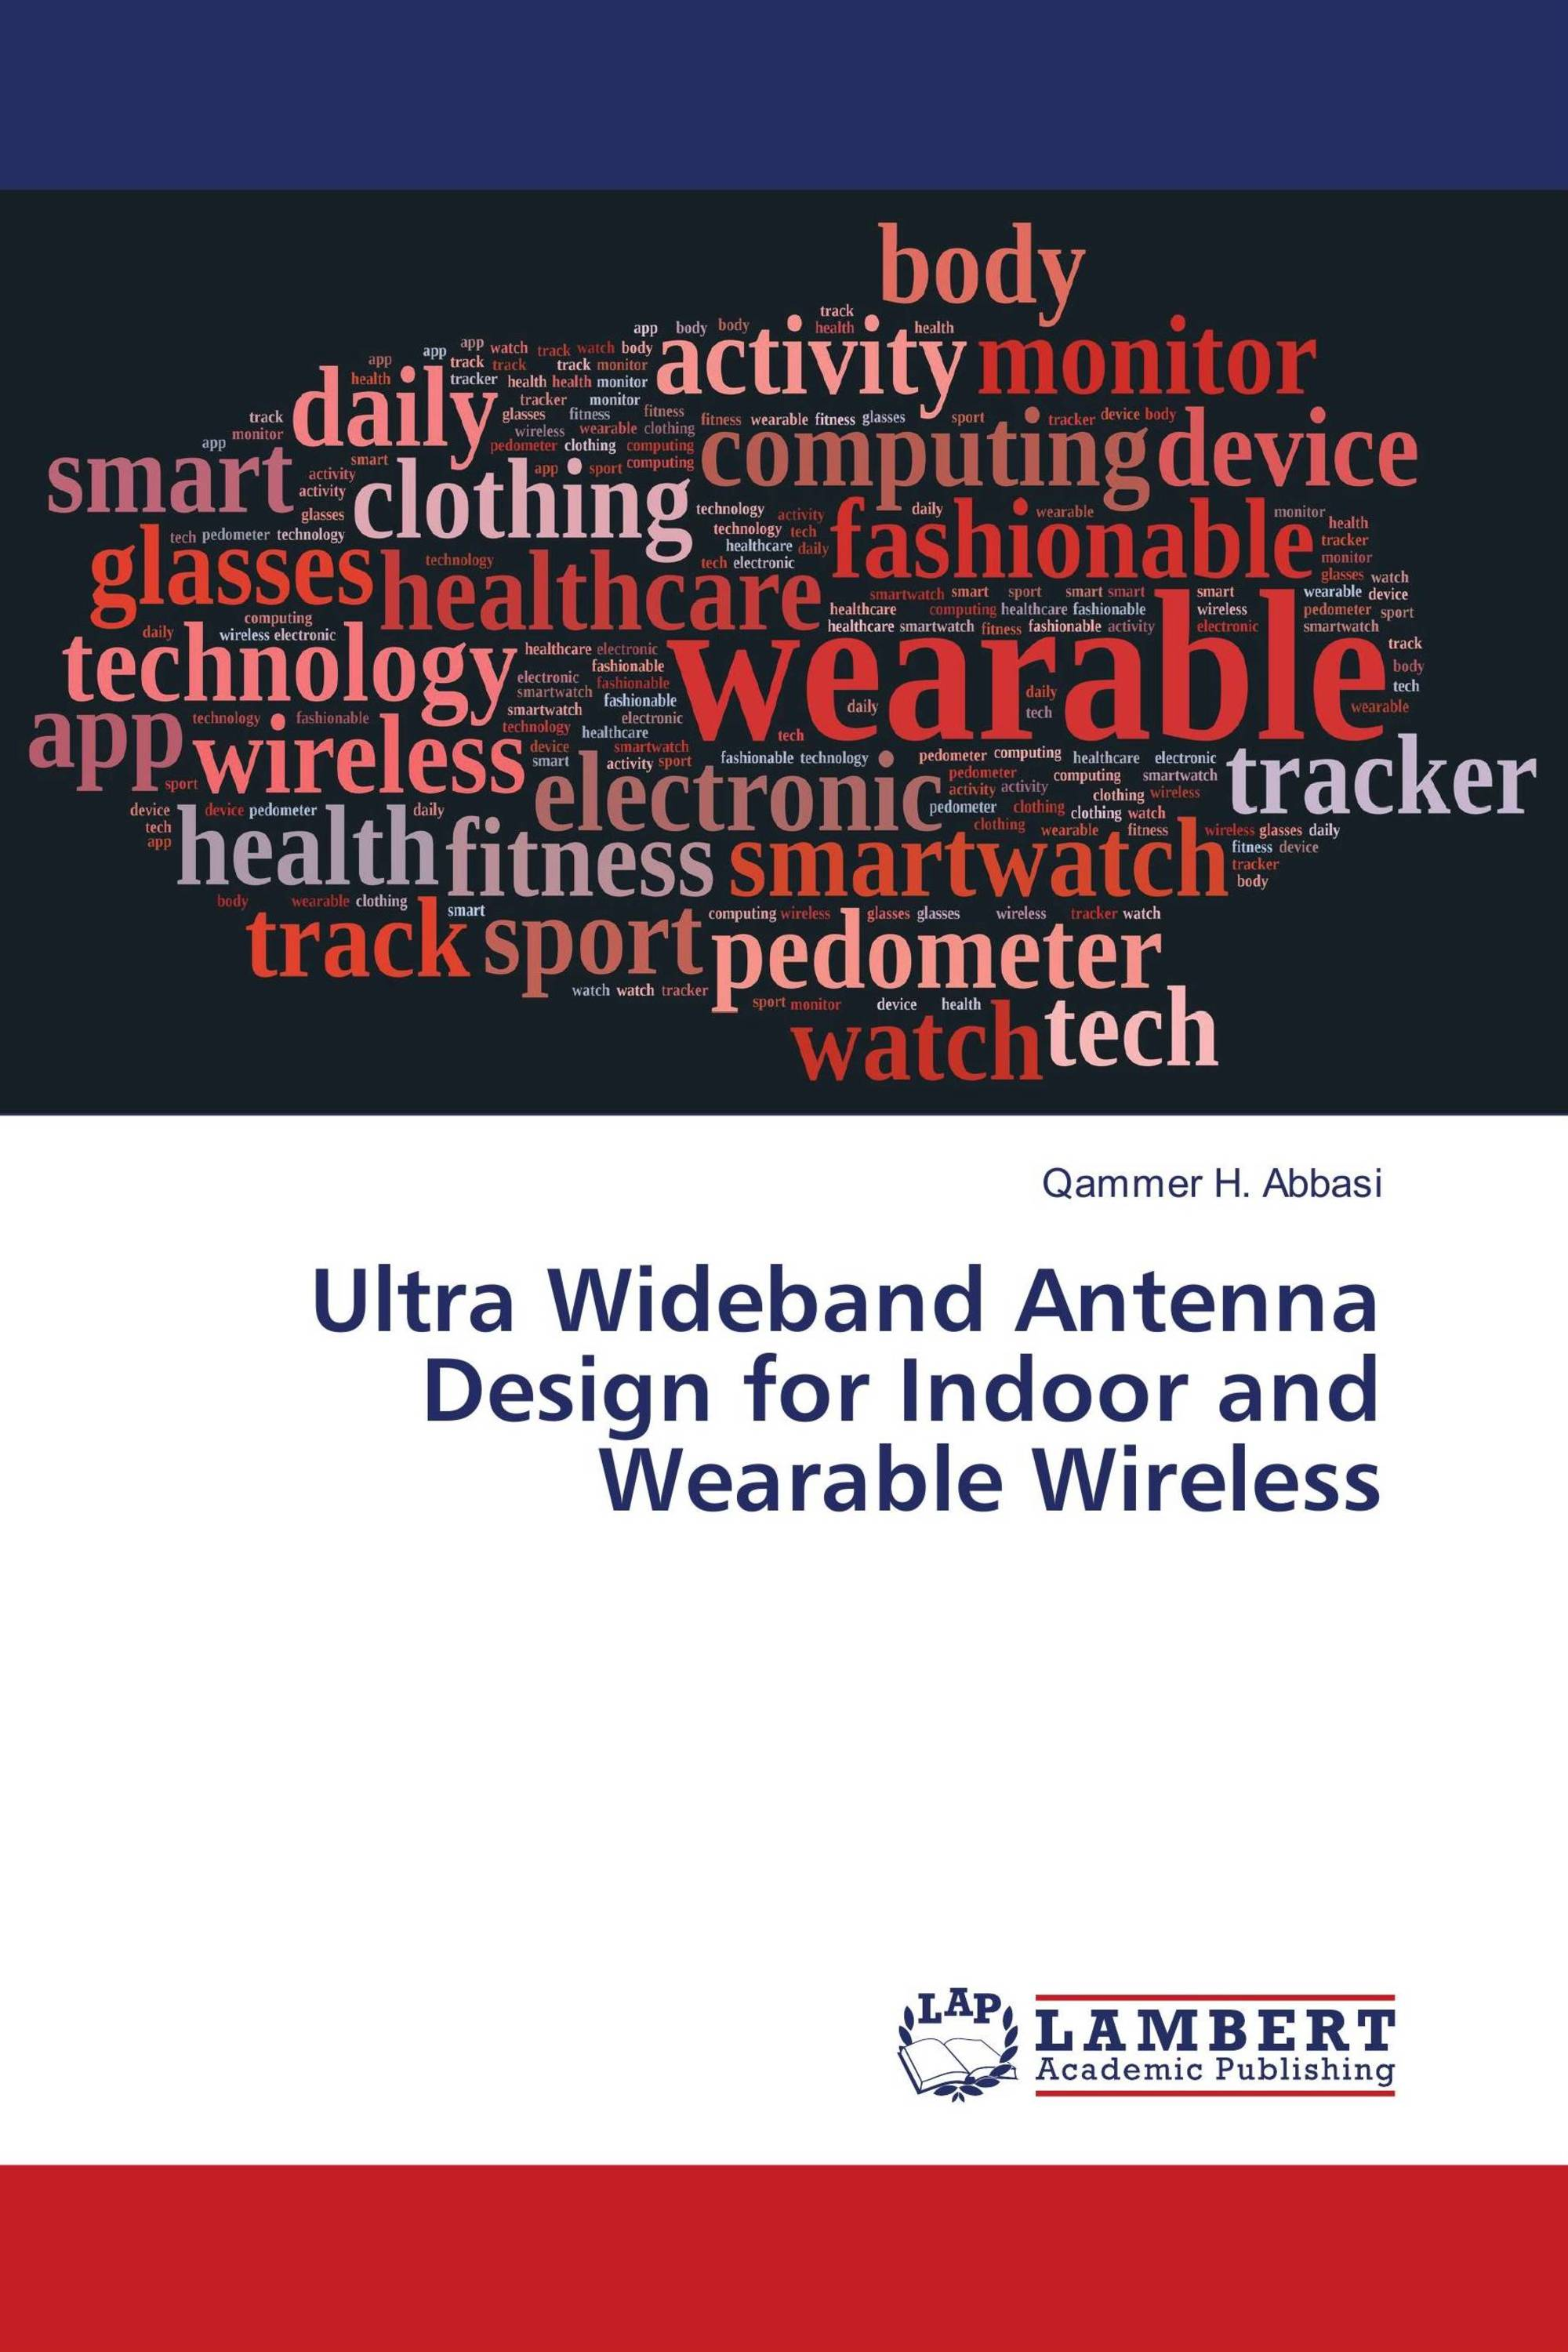 Ultra Wideband Antenna Design for Indoor and Wearable Wireless